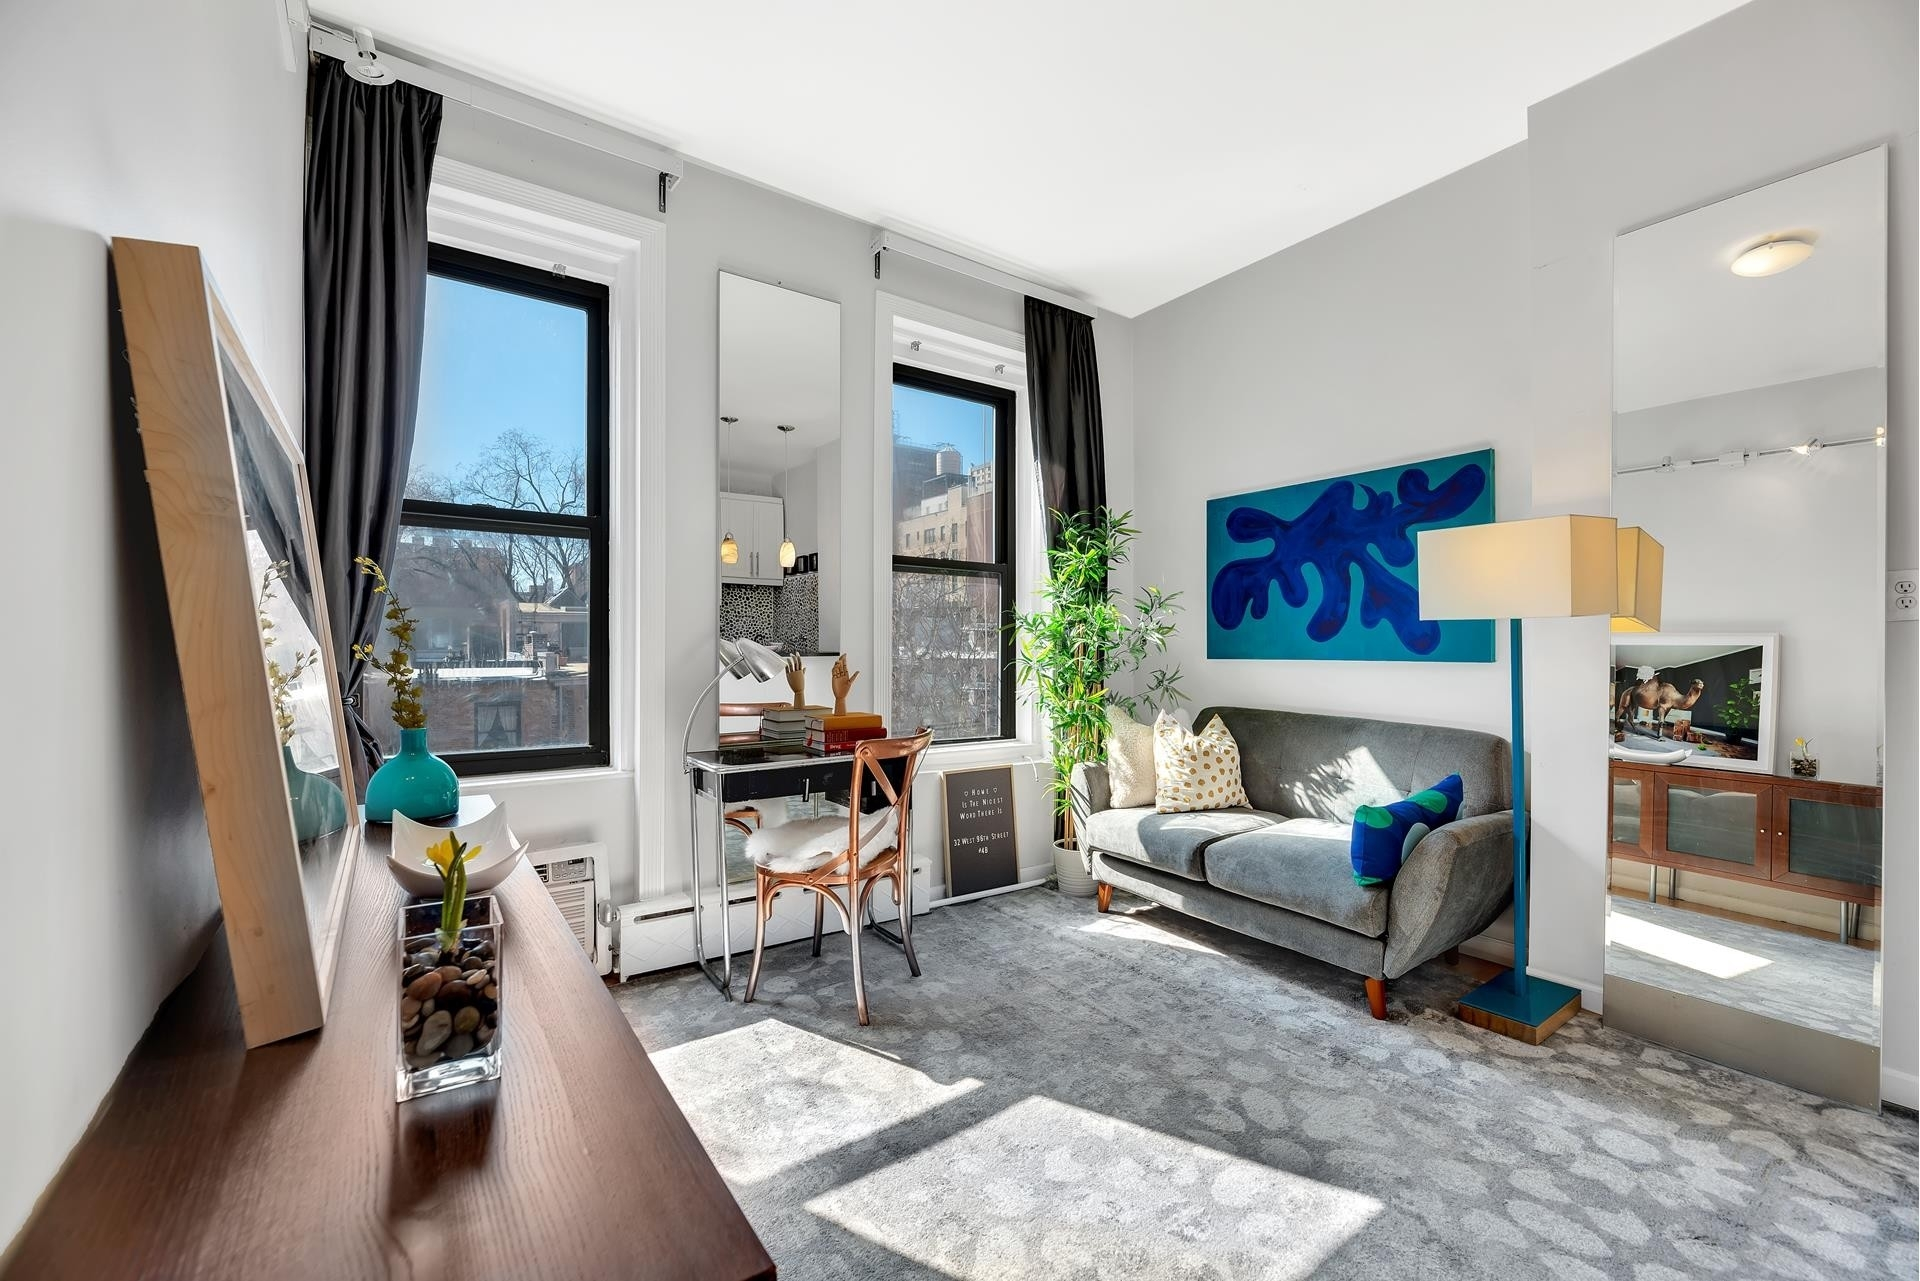 Property à 32 W 96TH ST , 4B Upper West Side, New York, NY 10025